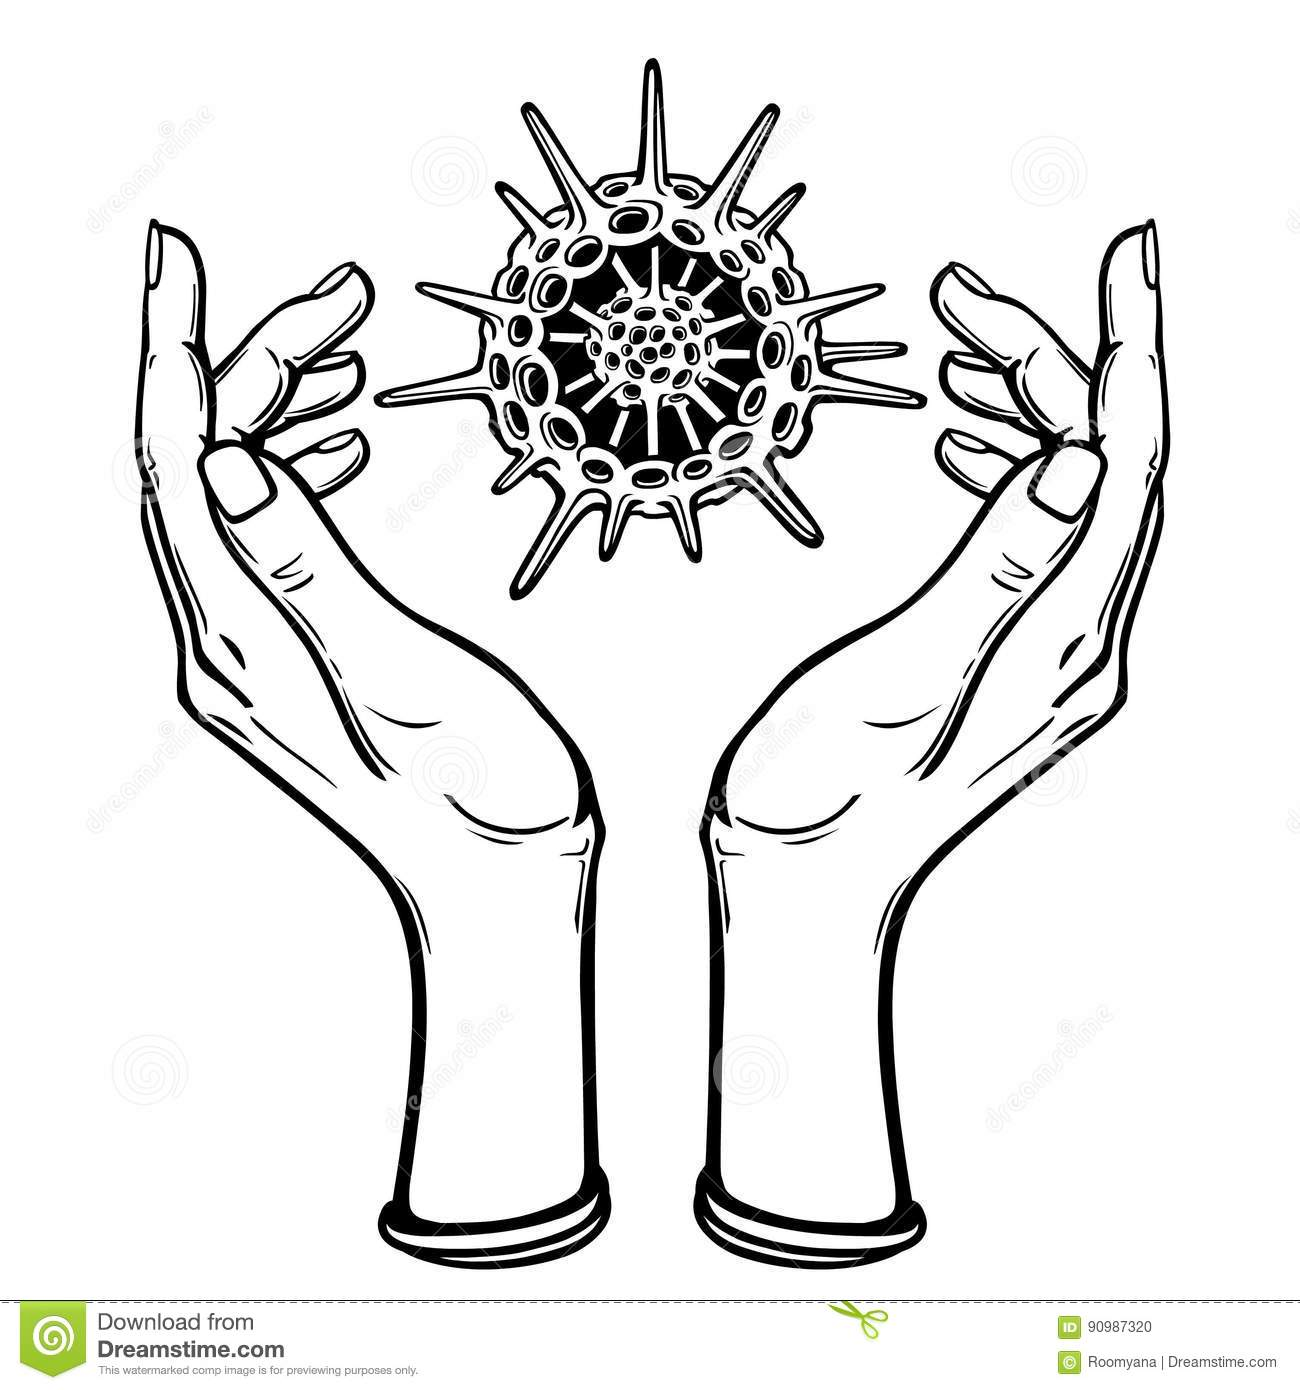 Image The Stylized Hands Hold A Skeleton Of A Radiolaria. Stock ...